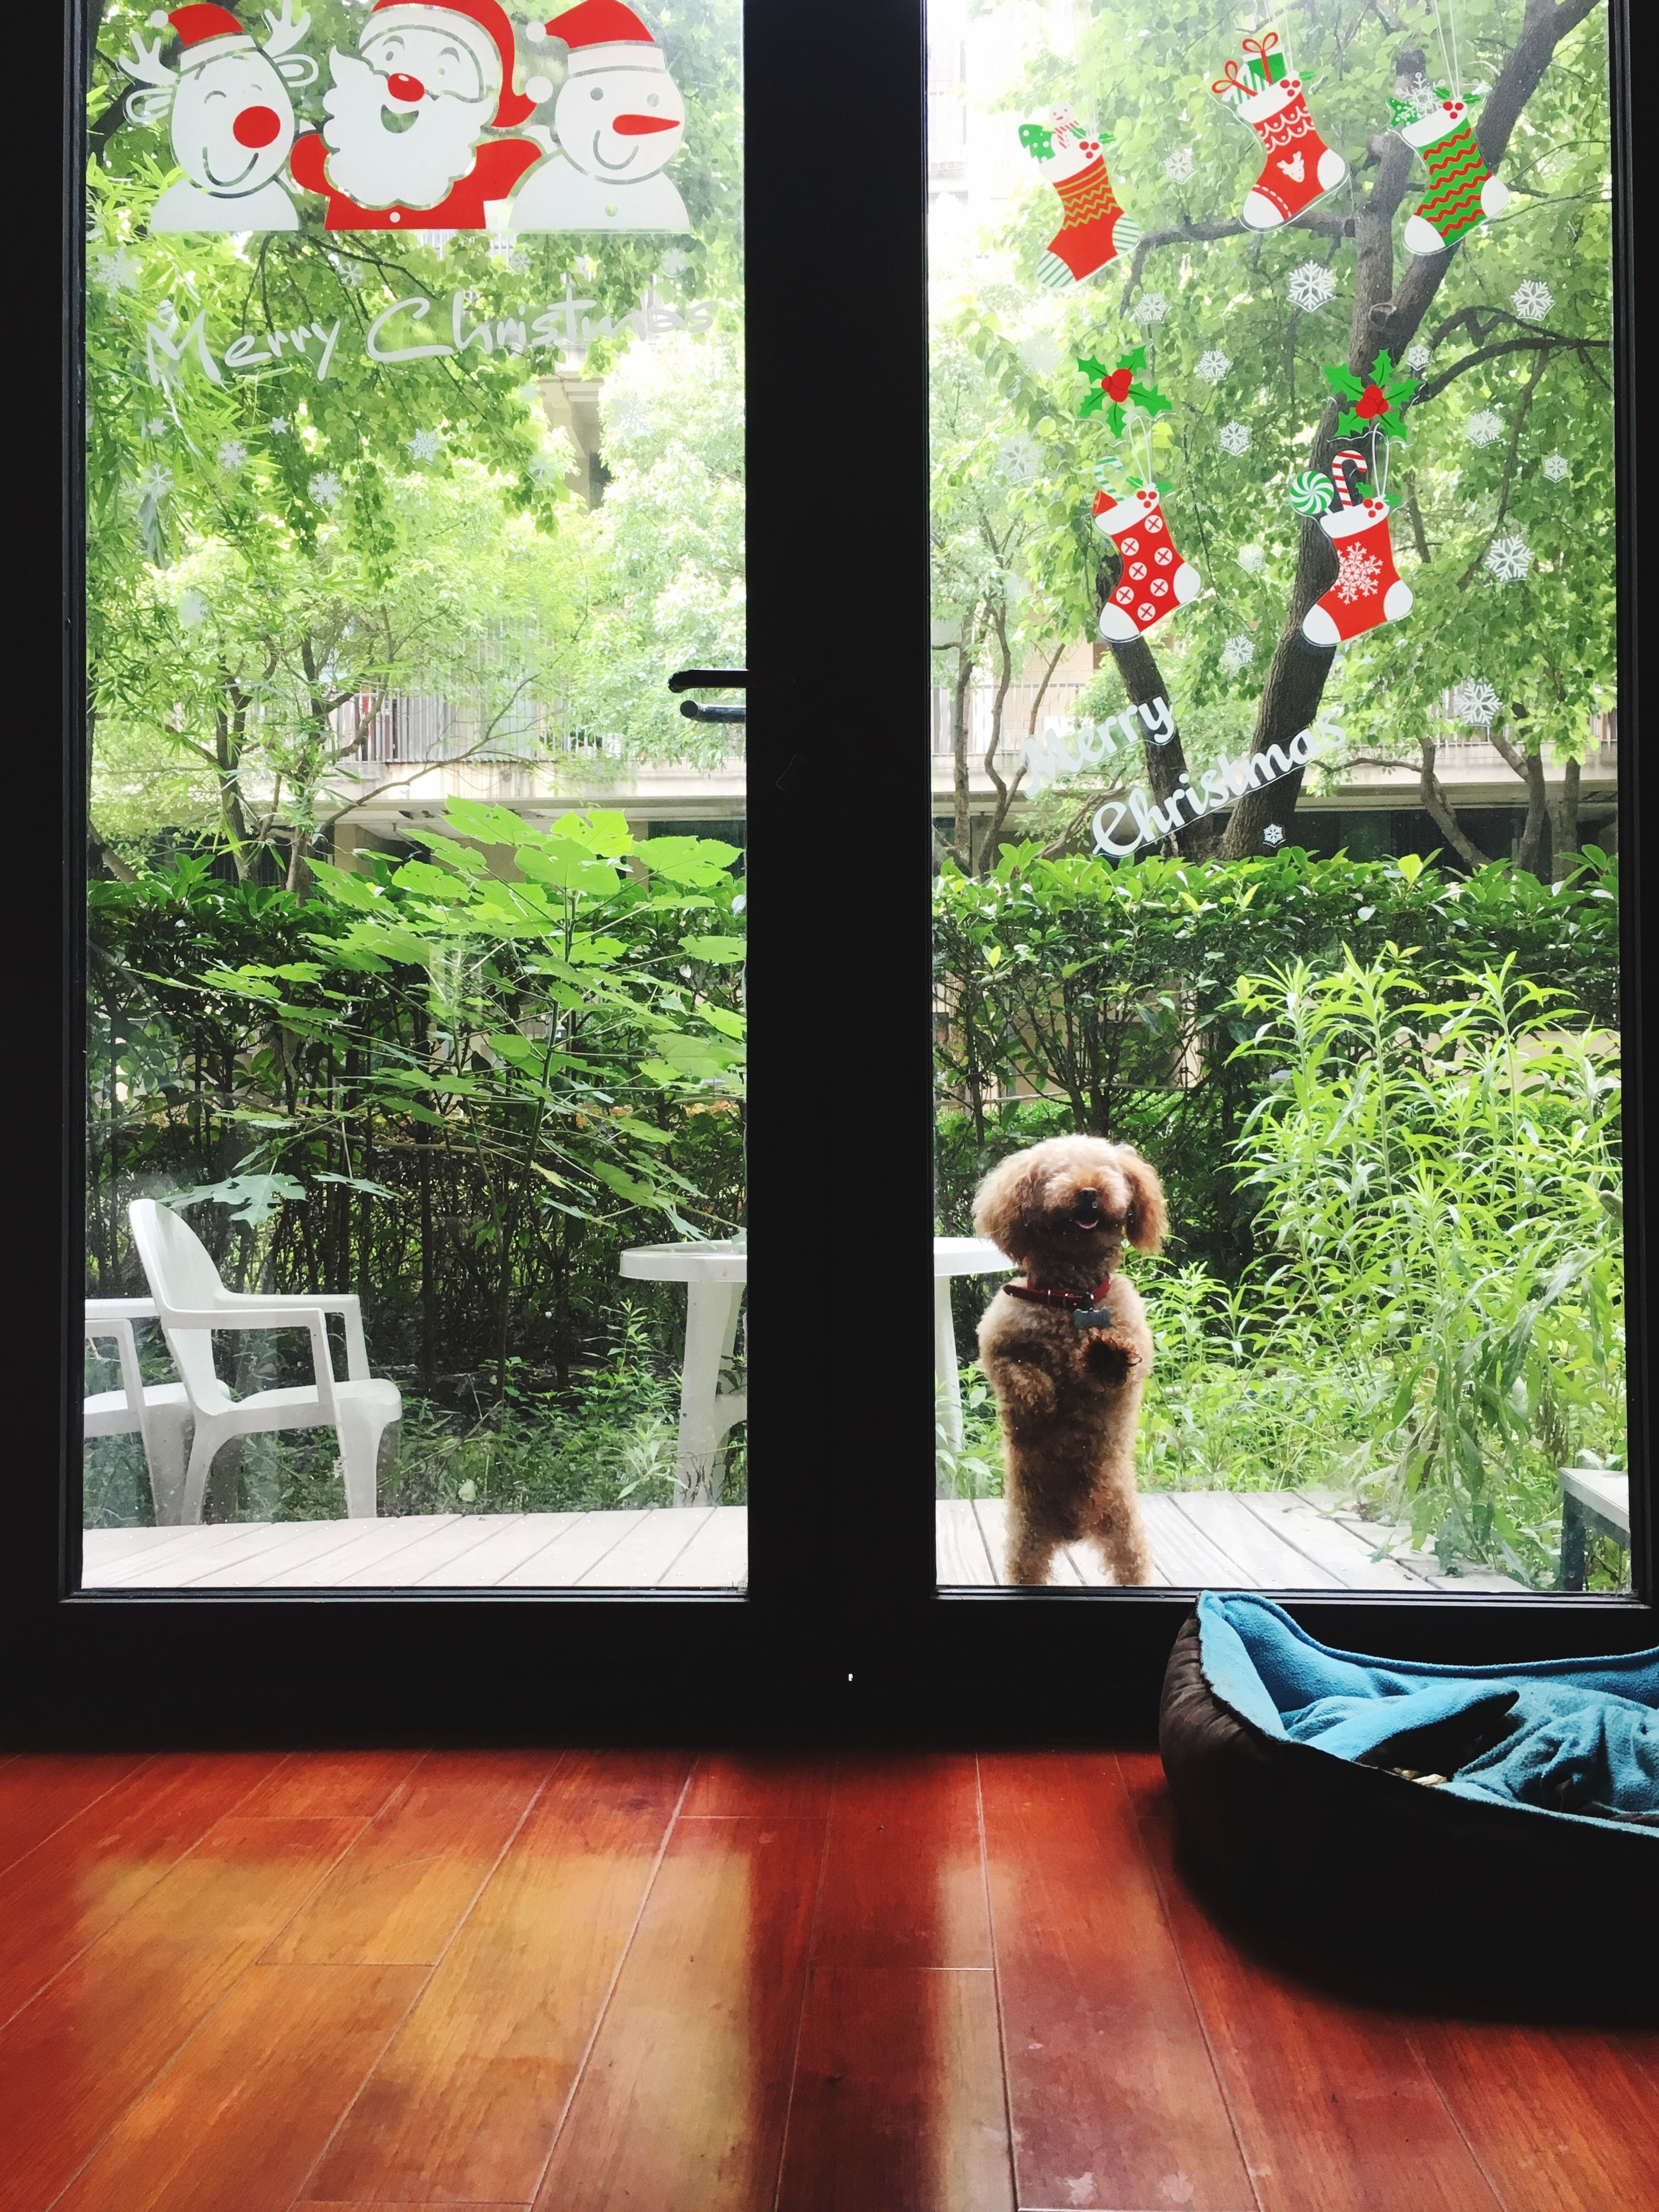 pets, dog, window, domestic animals, animal themes, indoors, one animal, mammal, day, no people, home interior, tree, growth, nature